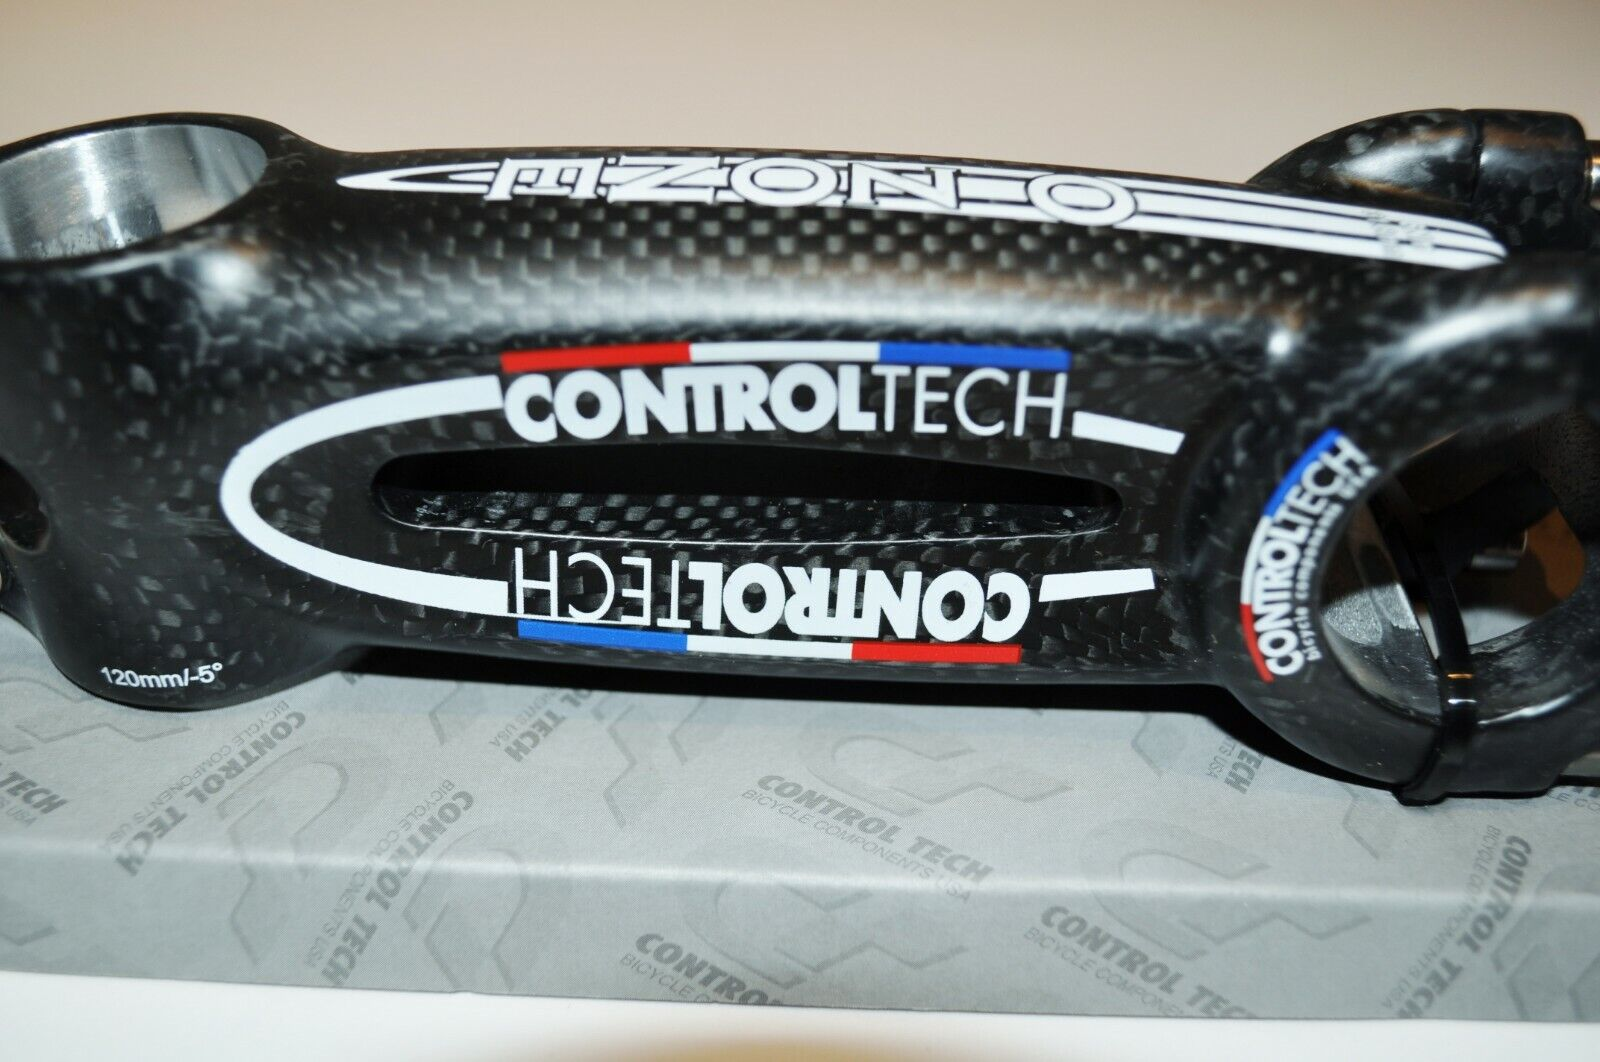 ControlTech 3K Carbon O-ZONE DCS 120mm New  In Box Titanium Hardware  factory outlet